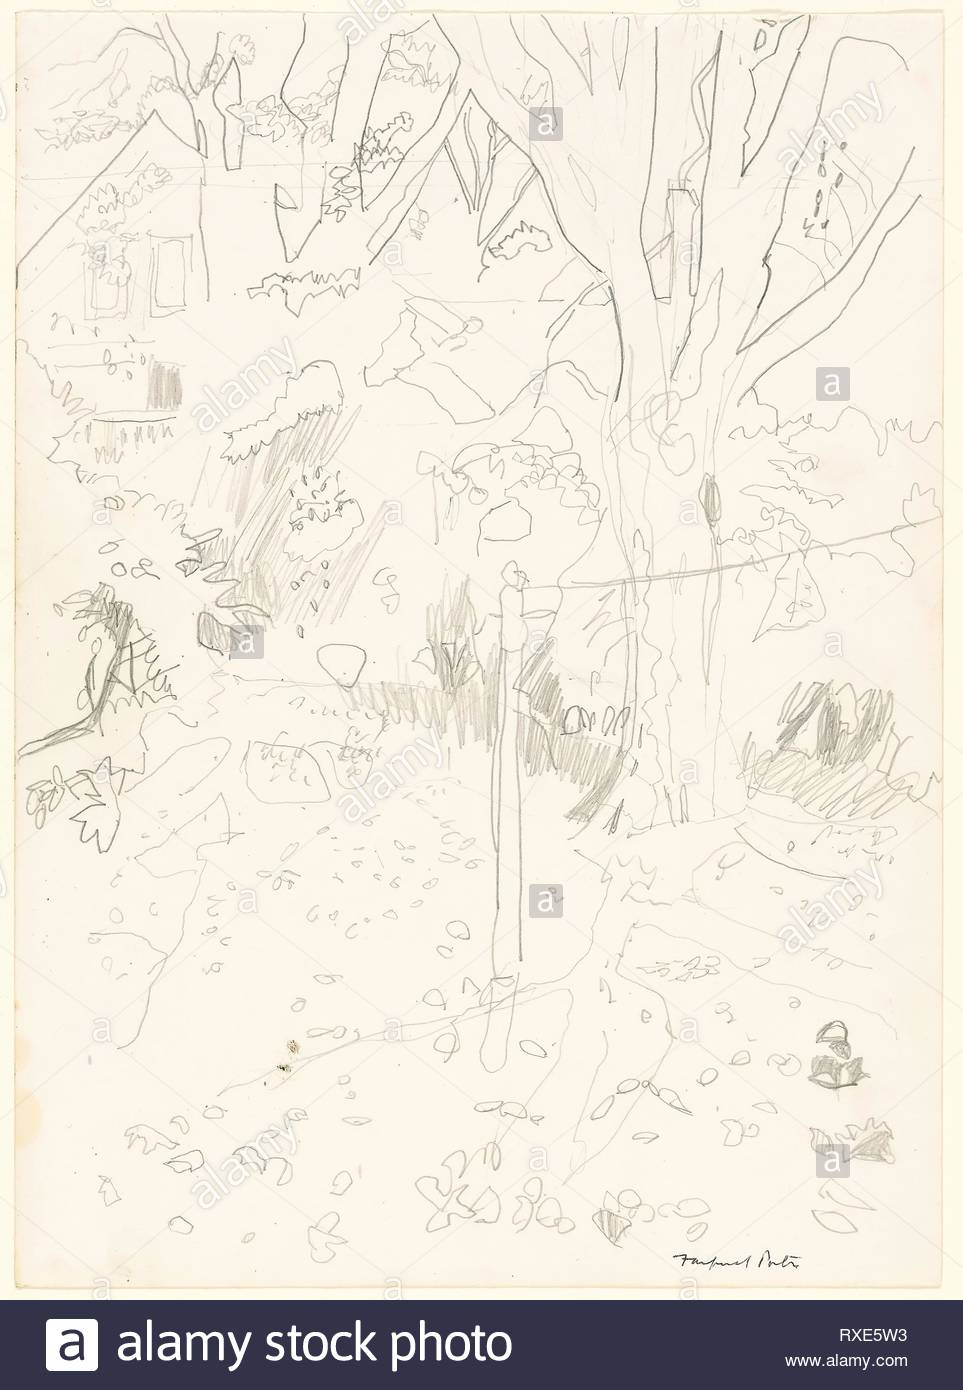 Trees and House. Fairfield Porter; American, 1907-1975. Date: 1966-1967. Dimensions: 349 x 254 mm. Graphite on ivory wove paper. Origin: United States. Museum: The Chicago Art Institute. - Stock Image